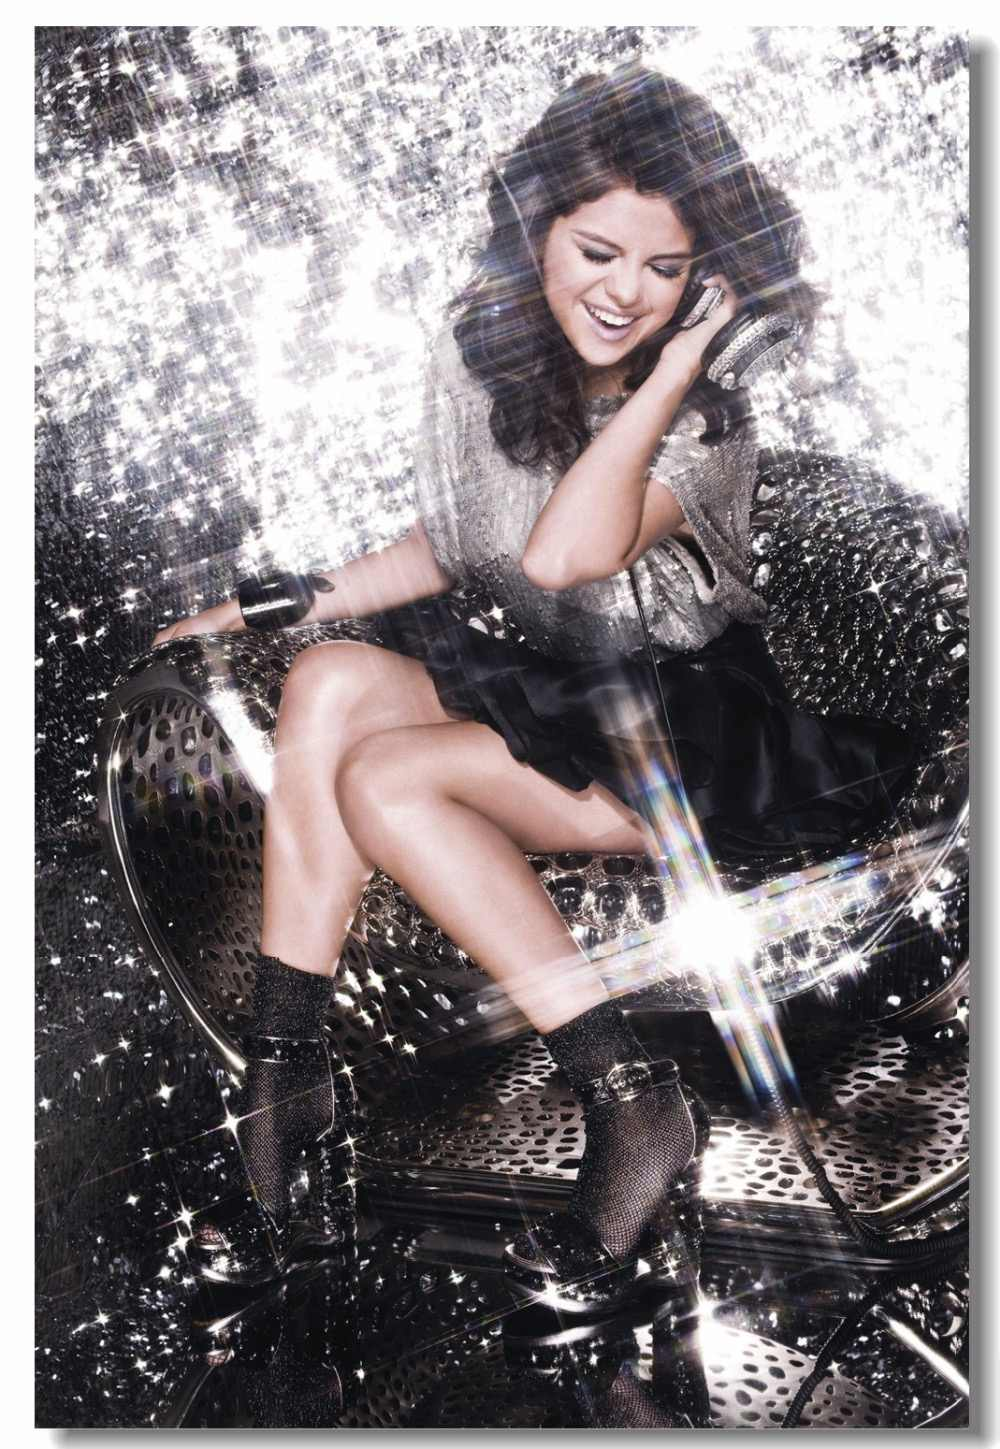 Selena Gomez Inspirational Motivational Wall Decal Quote Art Home Room Decor